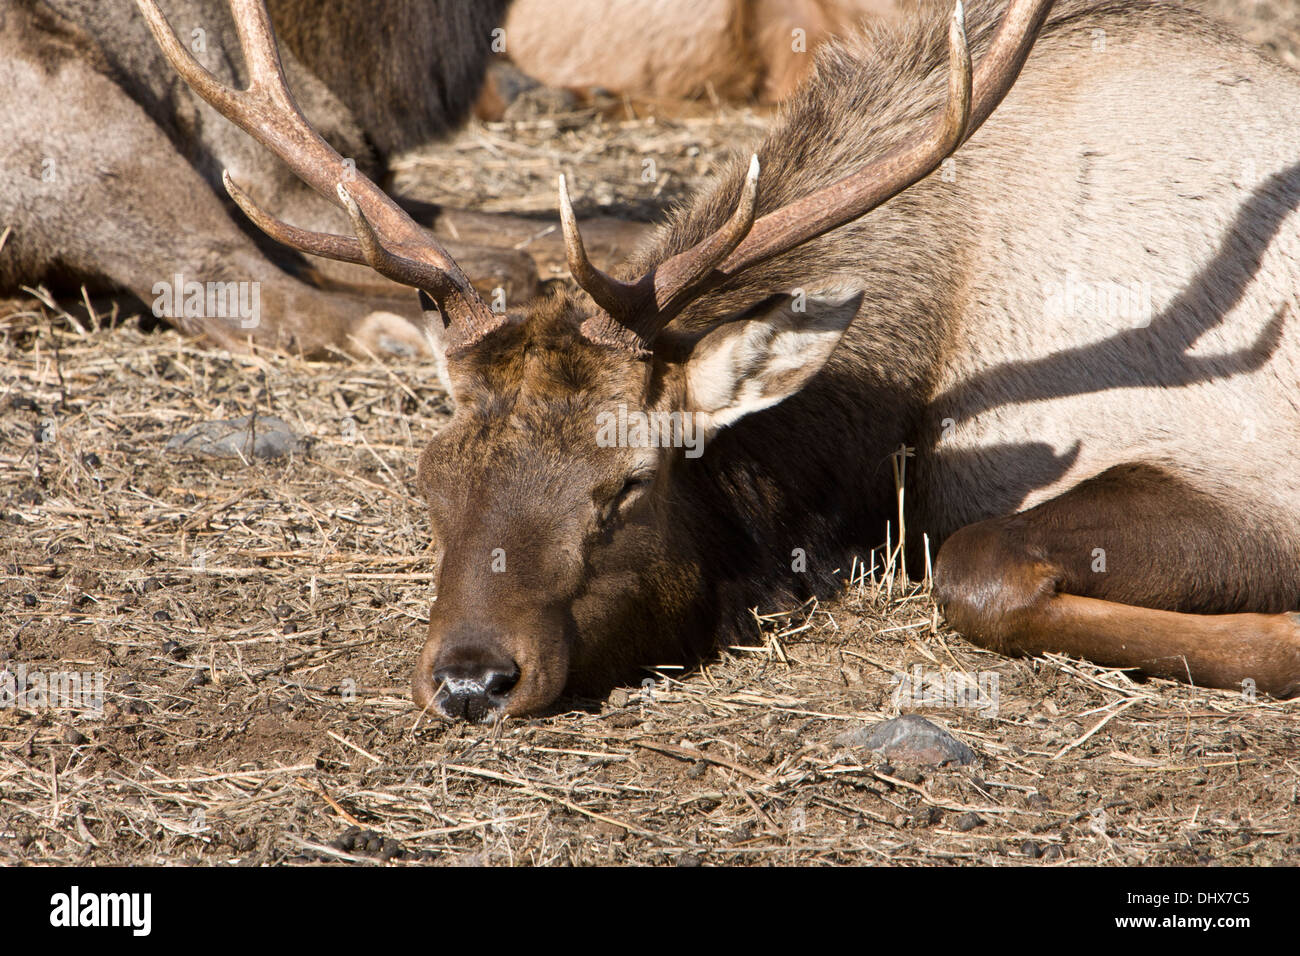 A Rocky Mountain Elk snoozes in the late morning sun at Oak Creek Wildlife Area near Naches, Washington. - Stock Image